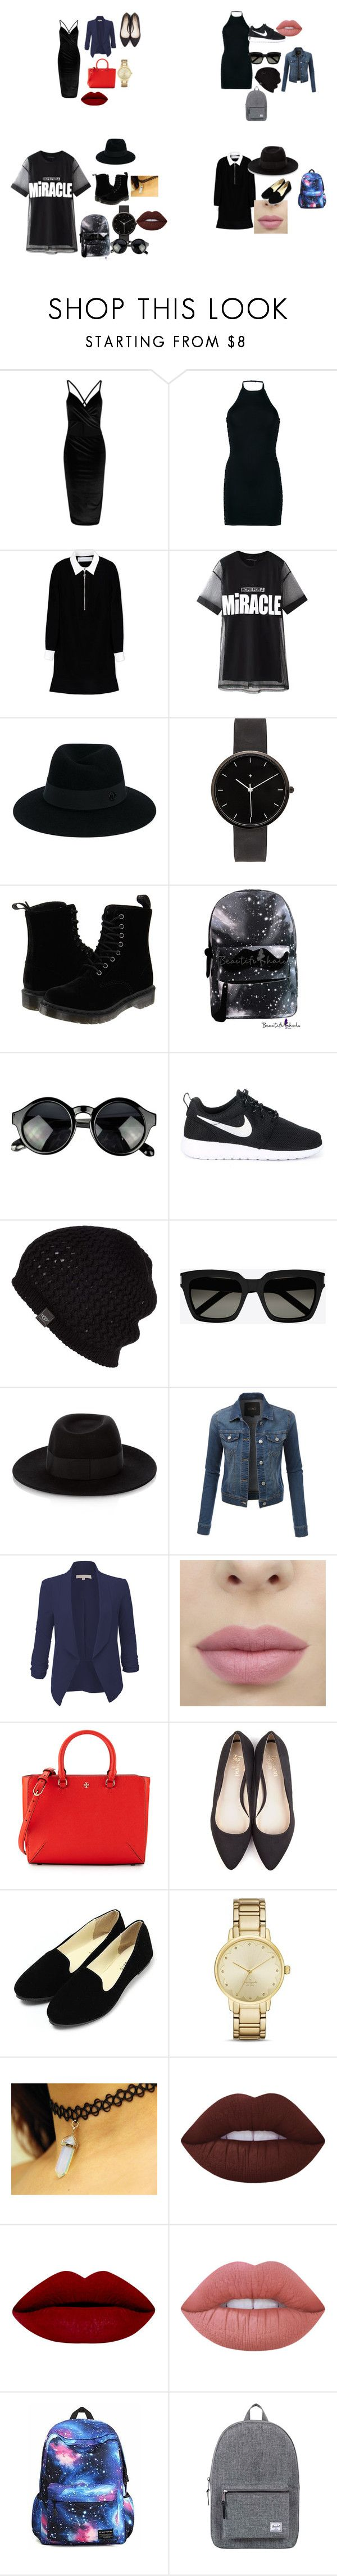 """black"" by sthefanie-larez on Polyvore featuring moda, Balmain, Victoria, Victoria Beckham, Chicnova Fashion, Maison Michel, I Love Ugly, Dr. Martens, NIKE, UGG Australia y Yves Saint Laurent"